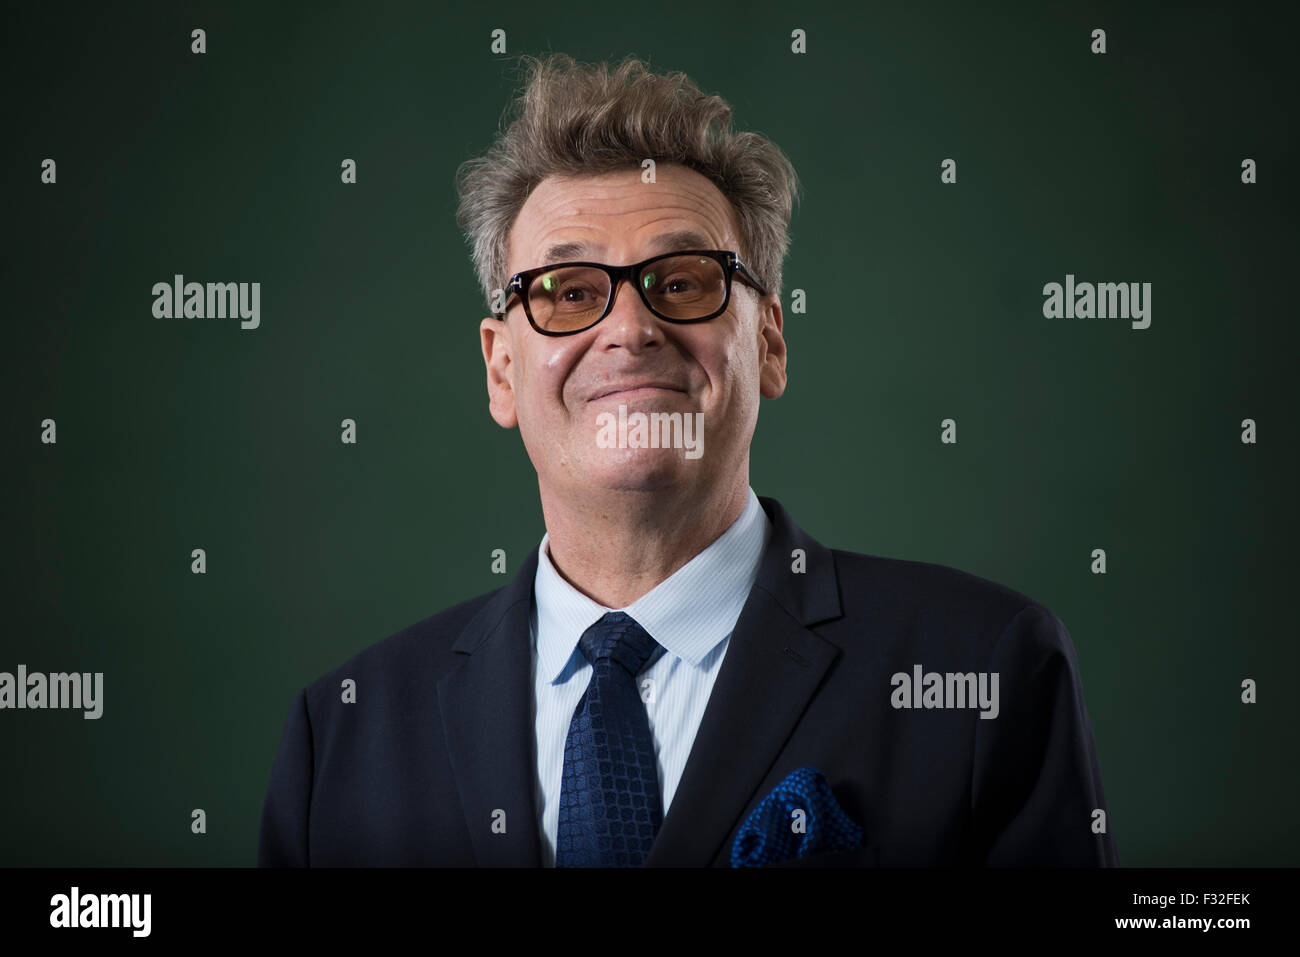 American actor, stand-up comedian and television host Greg Proops. - Stock Image